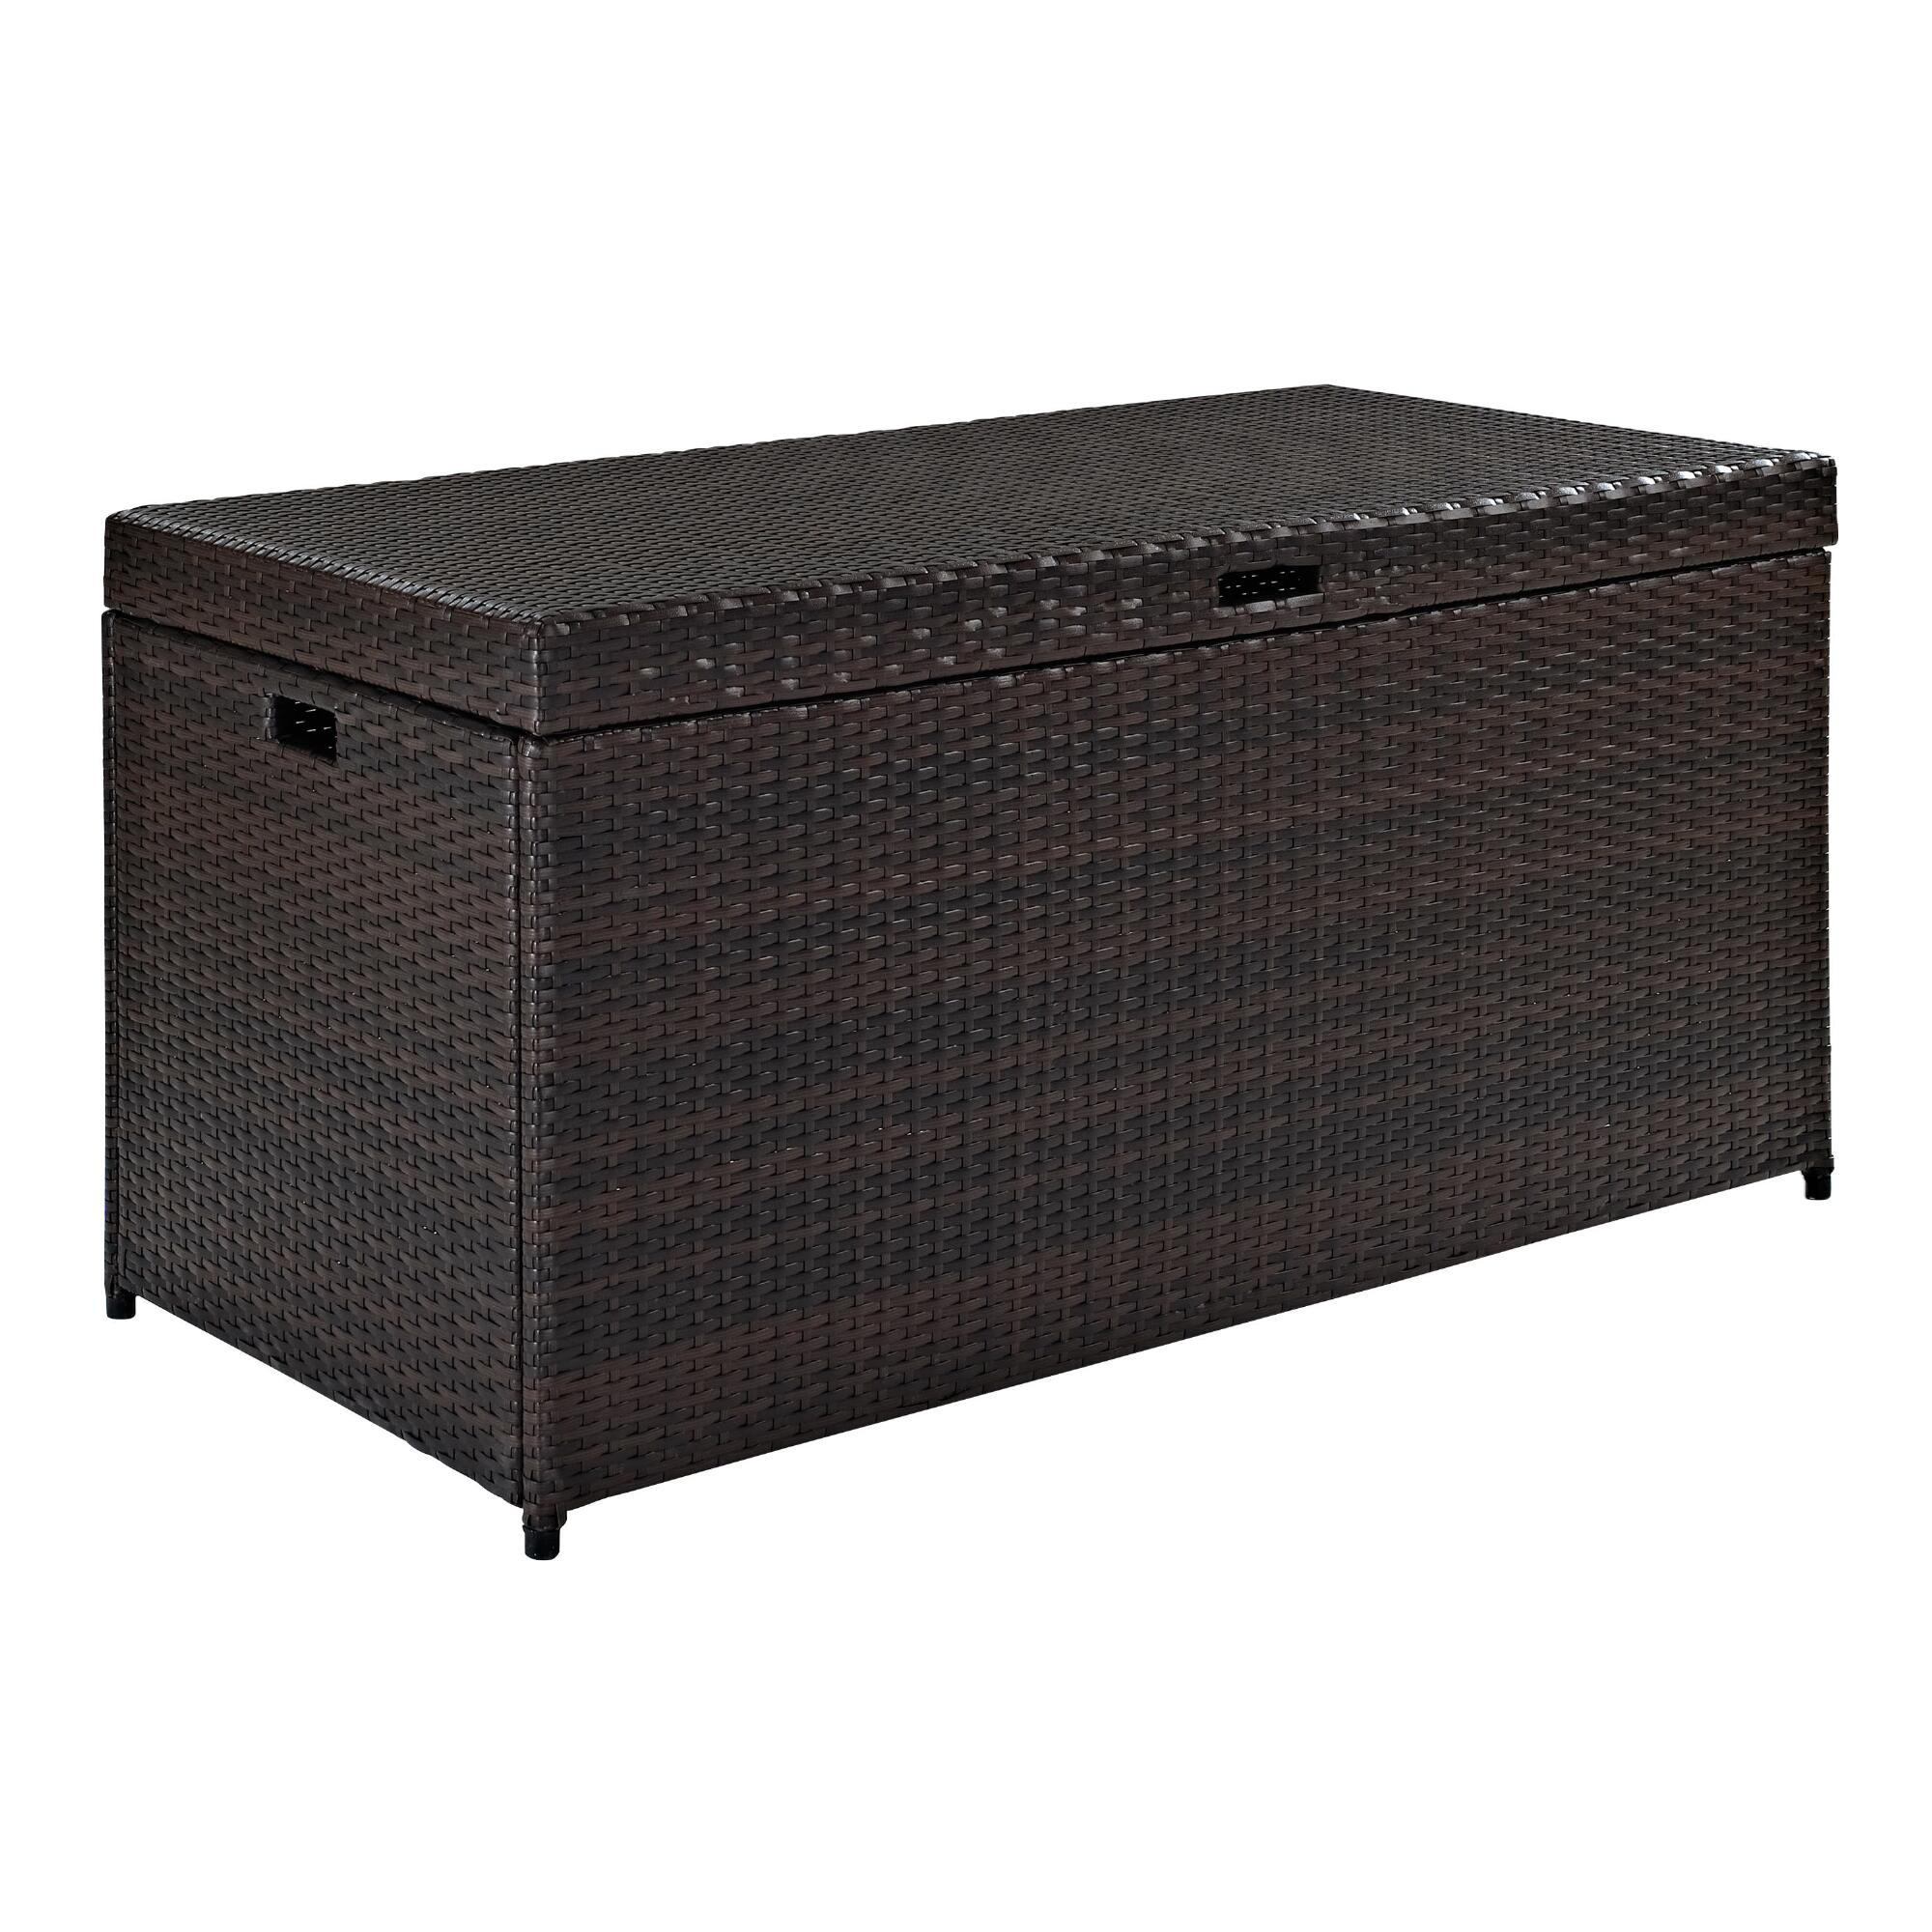 Pinamar Storage Chest: Brown - Resin by World Market